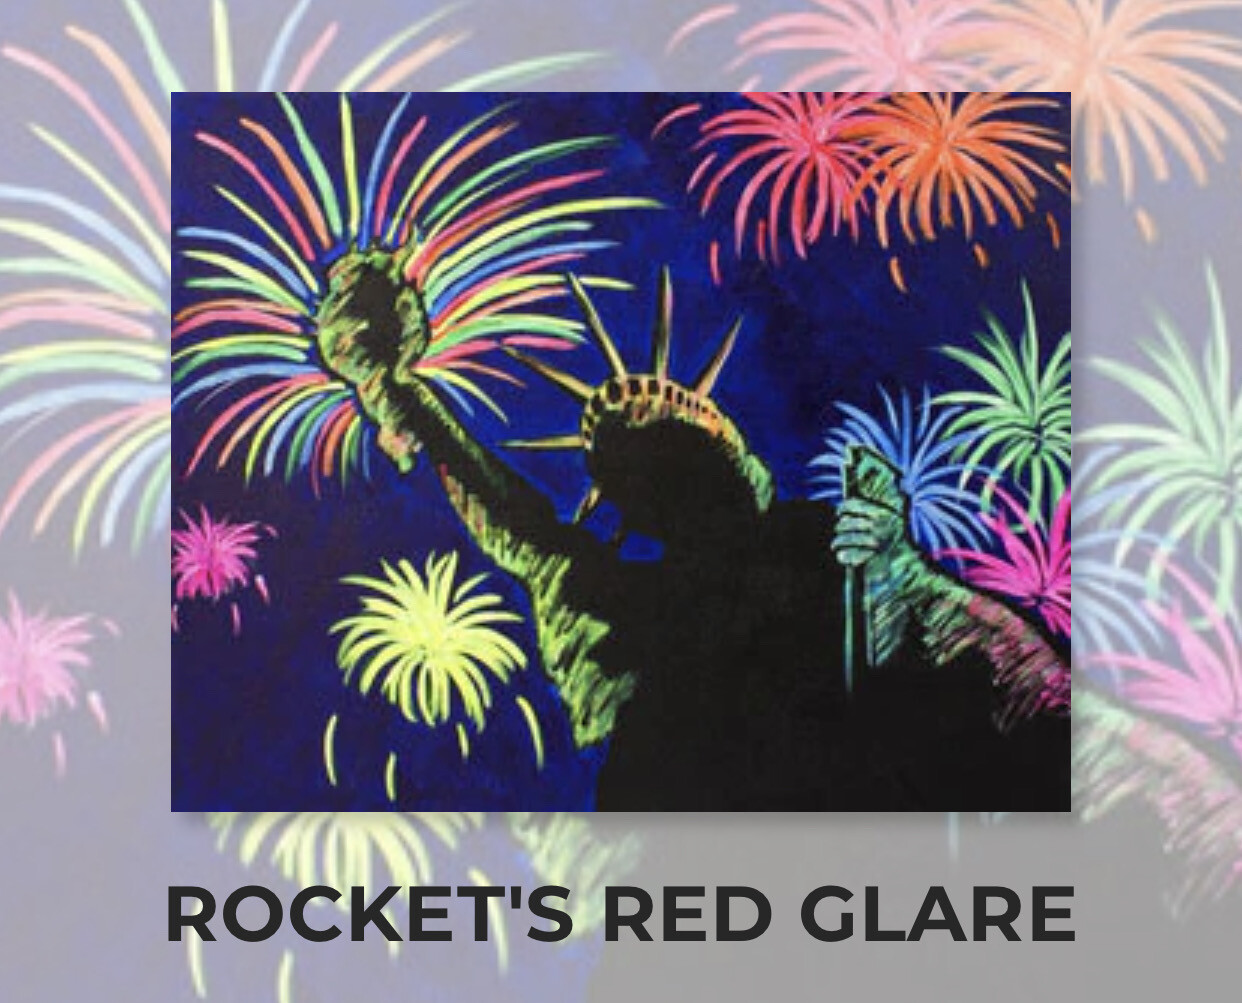 Rocket's Red Glare ADULT Acrylic Paint On Canvas DIY Art Kit